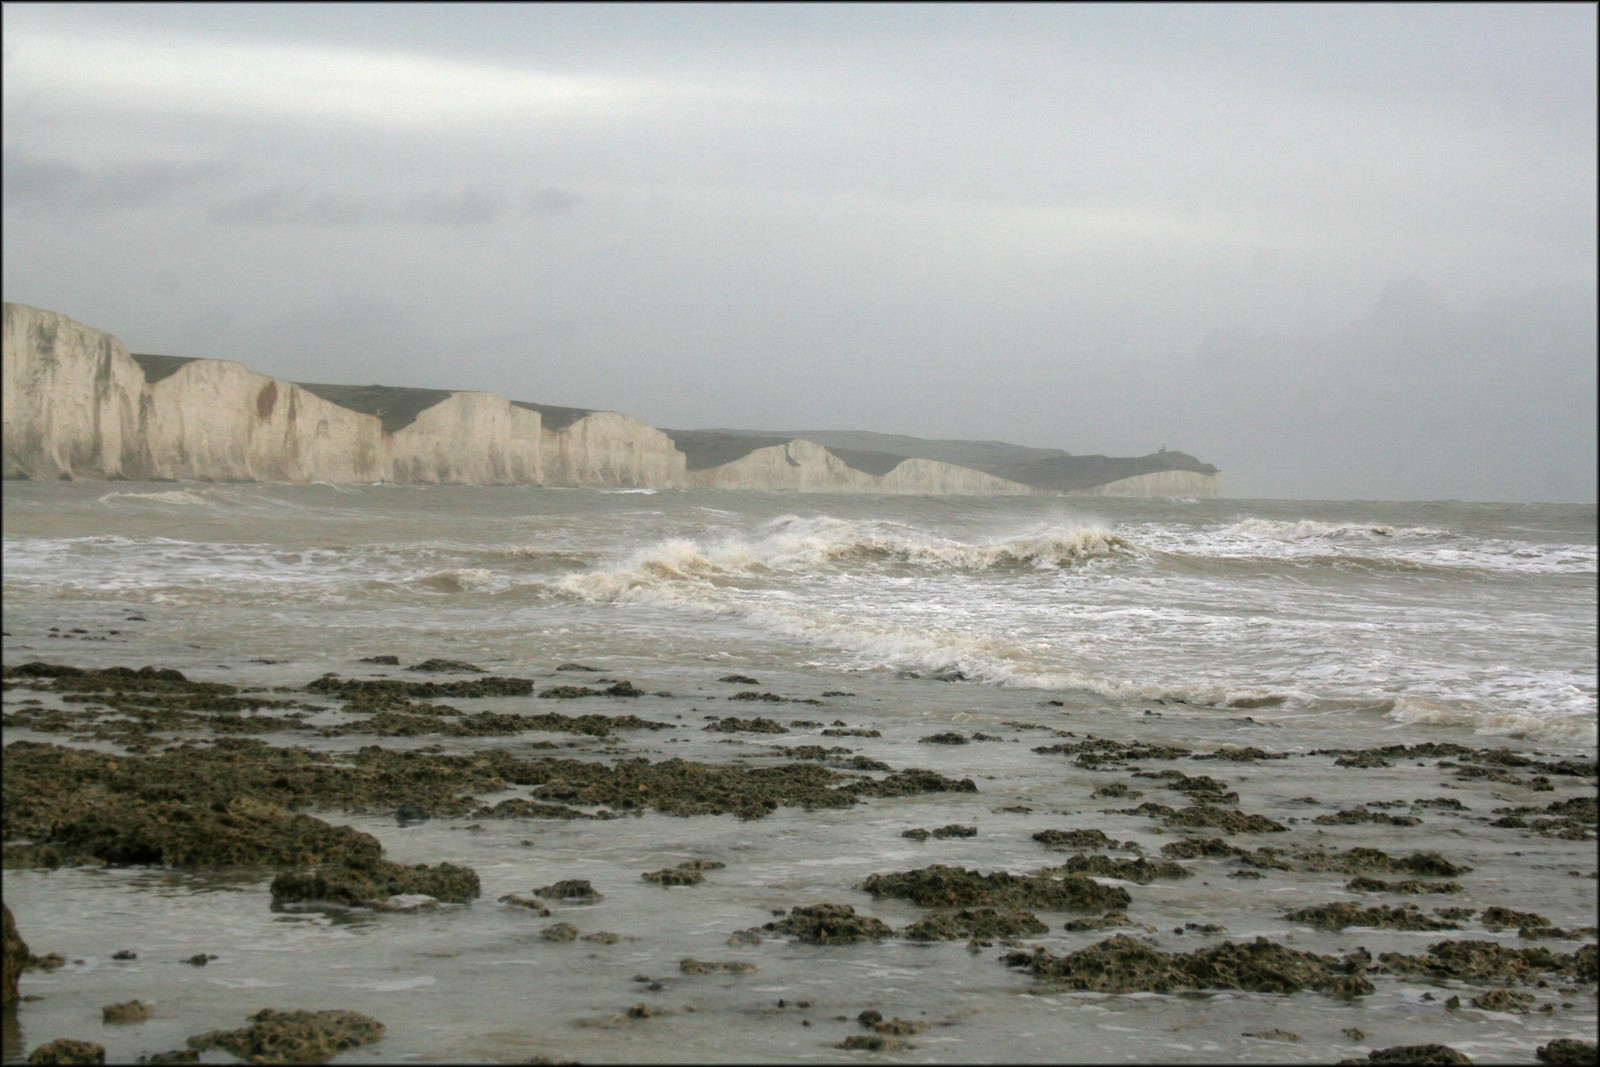 The Seven Sisters cliffs at Cuckmere Haven